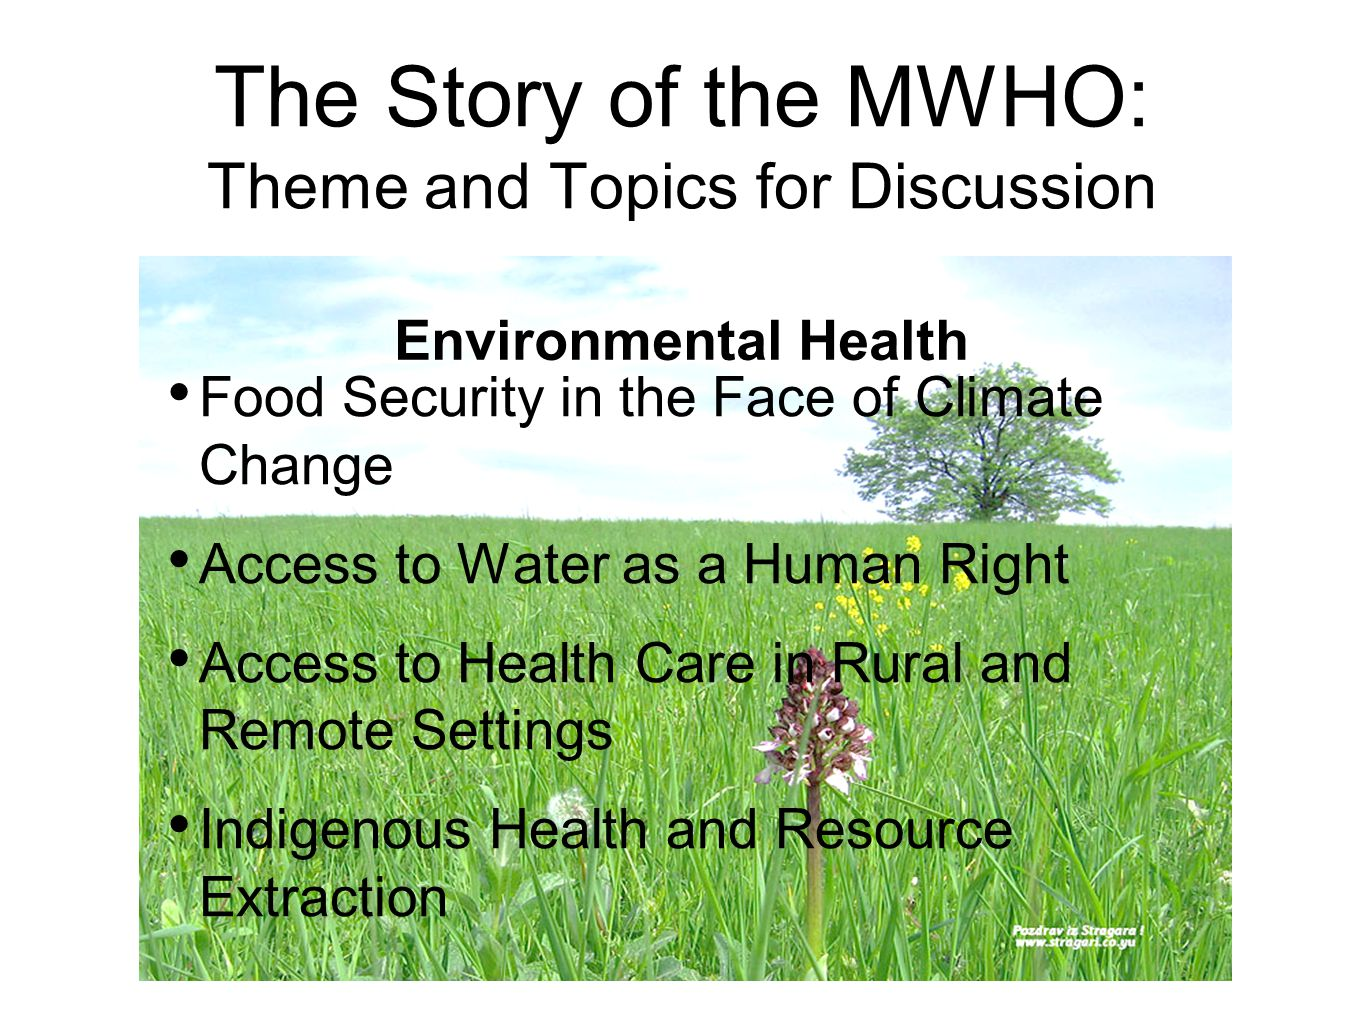 The Story of the MWHO: Theme and Topics for Discussion Food Security in the Face of Climate Change Access to Water as a Human Right Access to Health Care in Rural and Remote Settings Indigenous Health and Resource Extraction Environmental Health